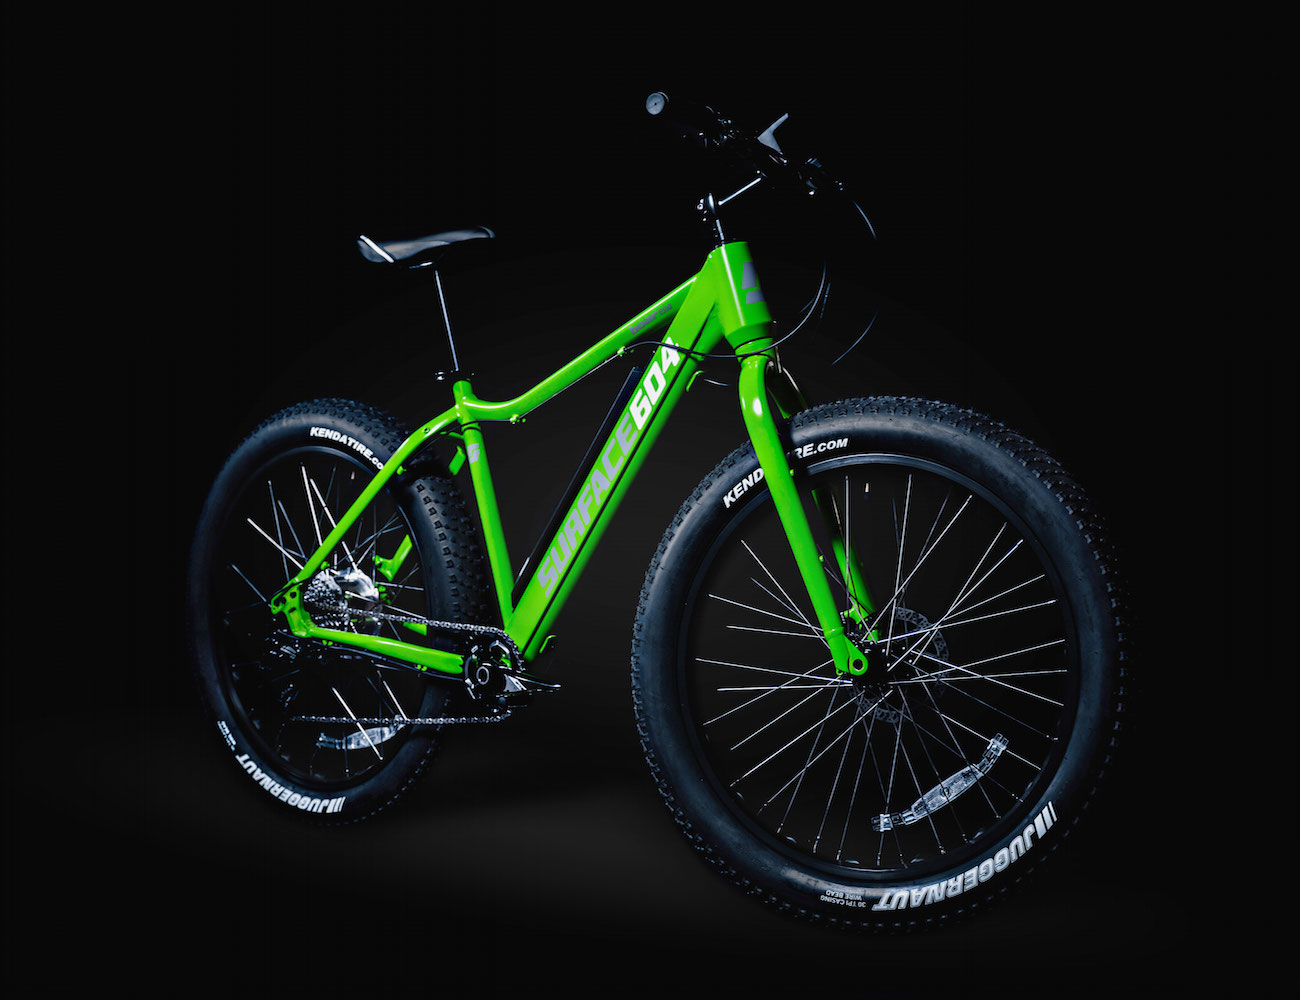 The 2016 Surface 604 Boar Electric Fat Bike